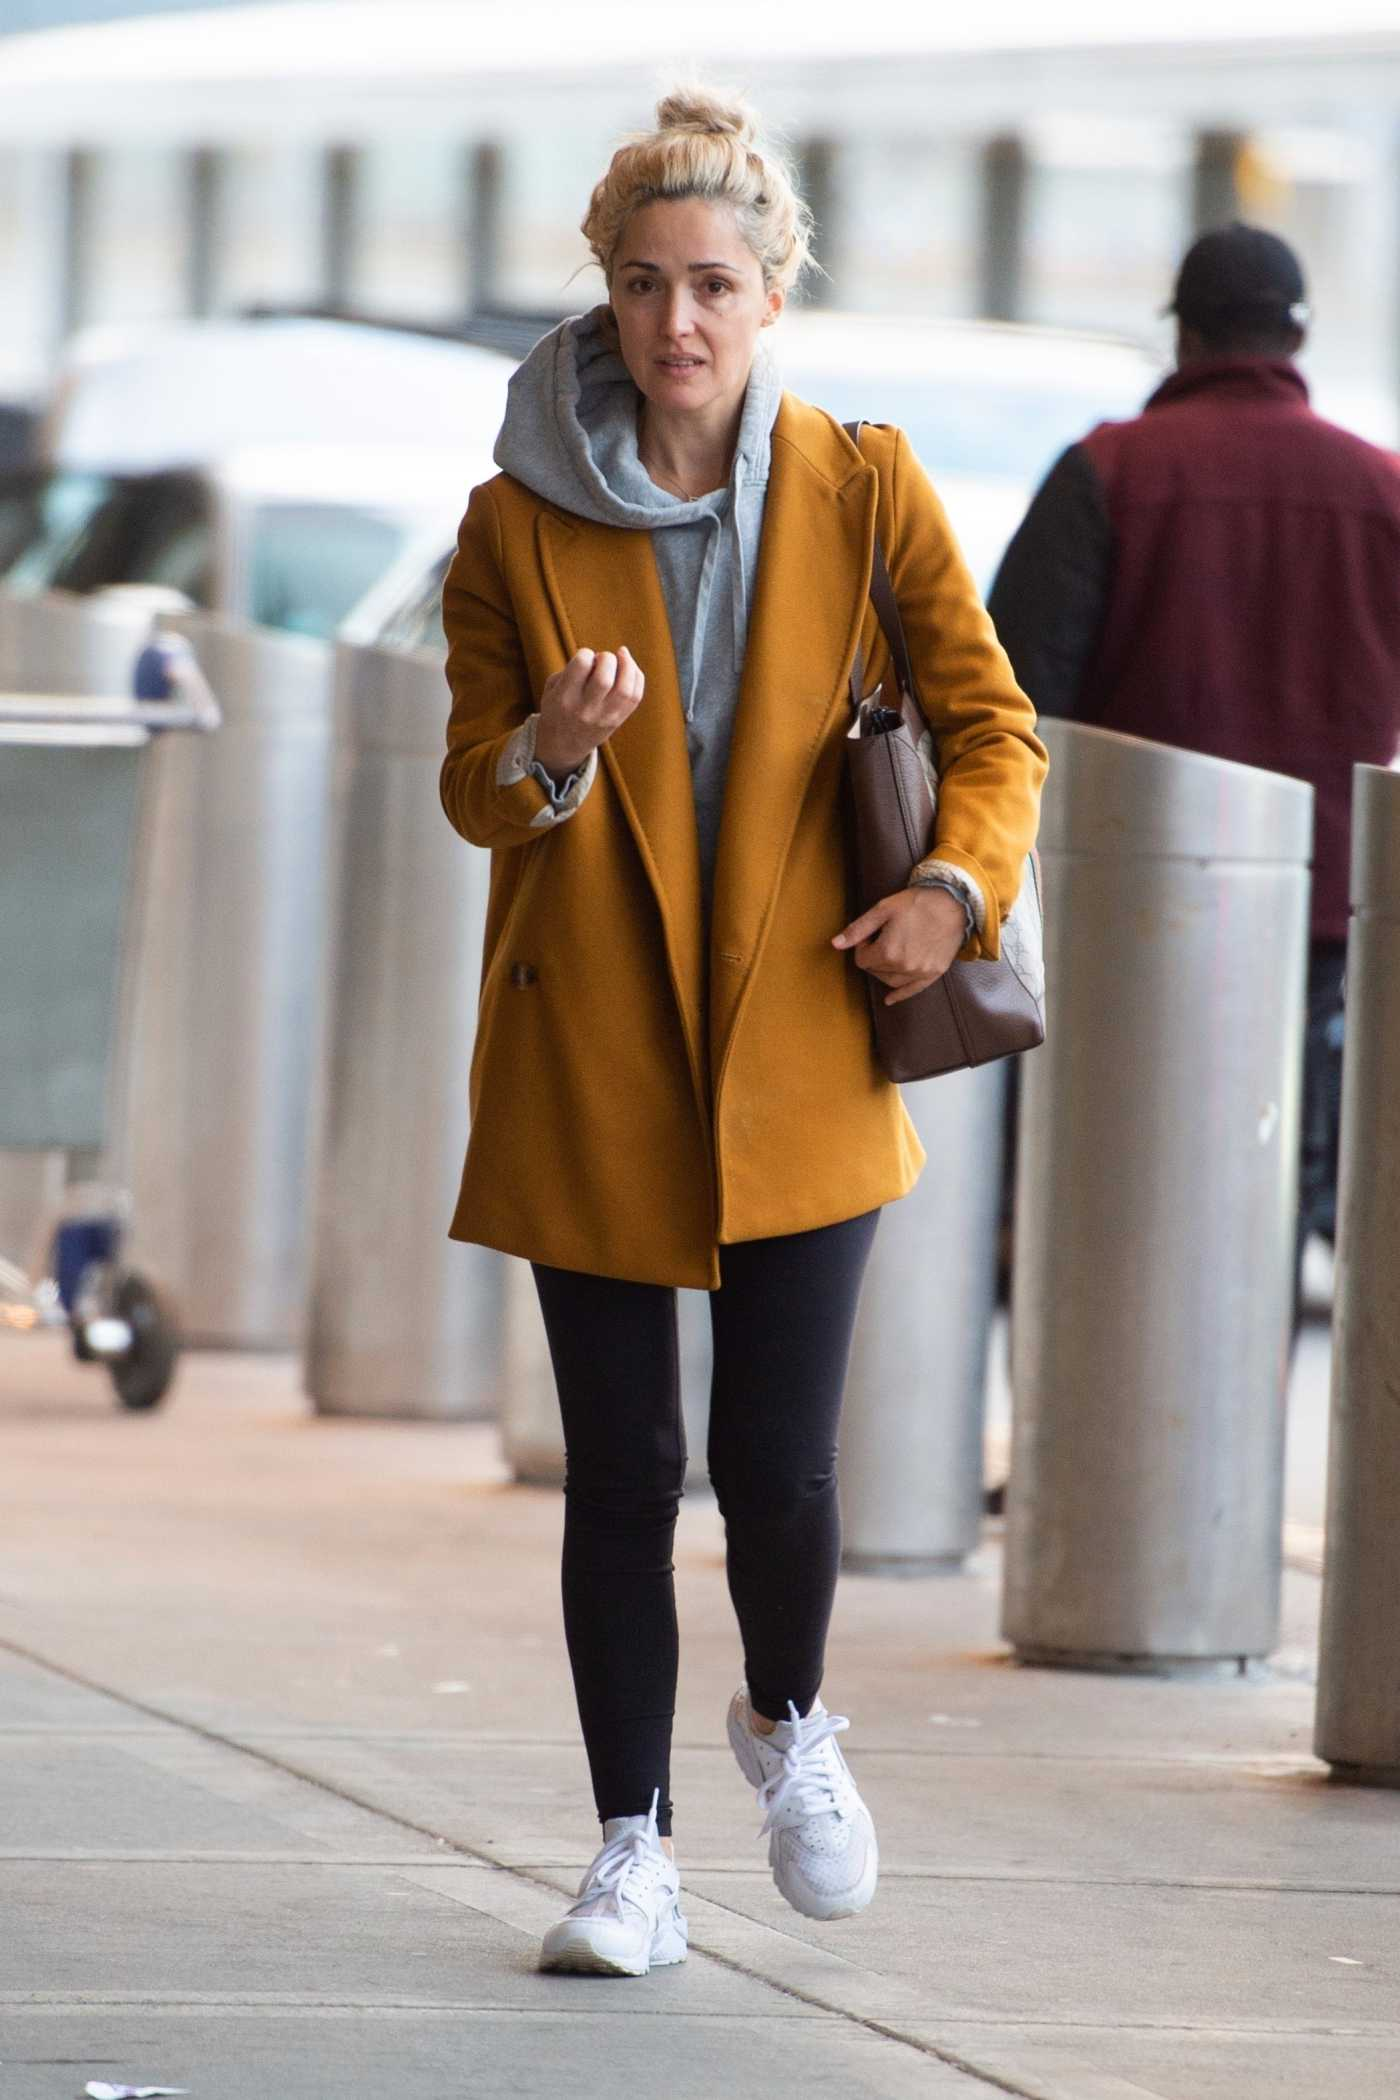 Rose Byrne in a Yellow Coat Arrives at JFK Airport in NYC 03/30/2019